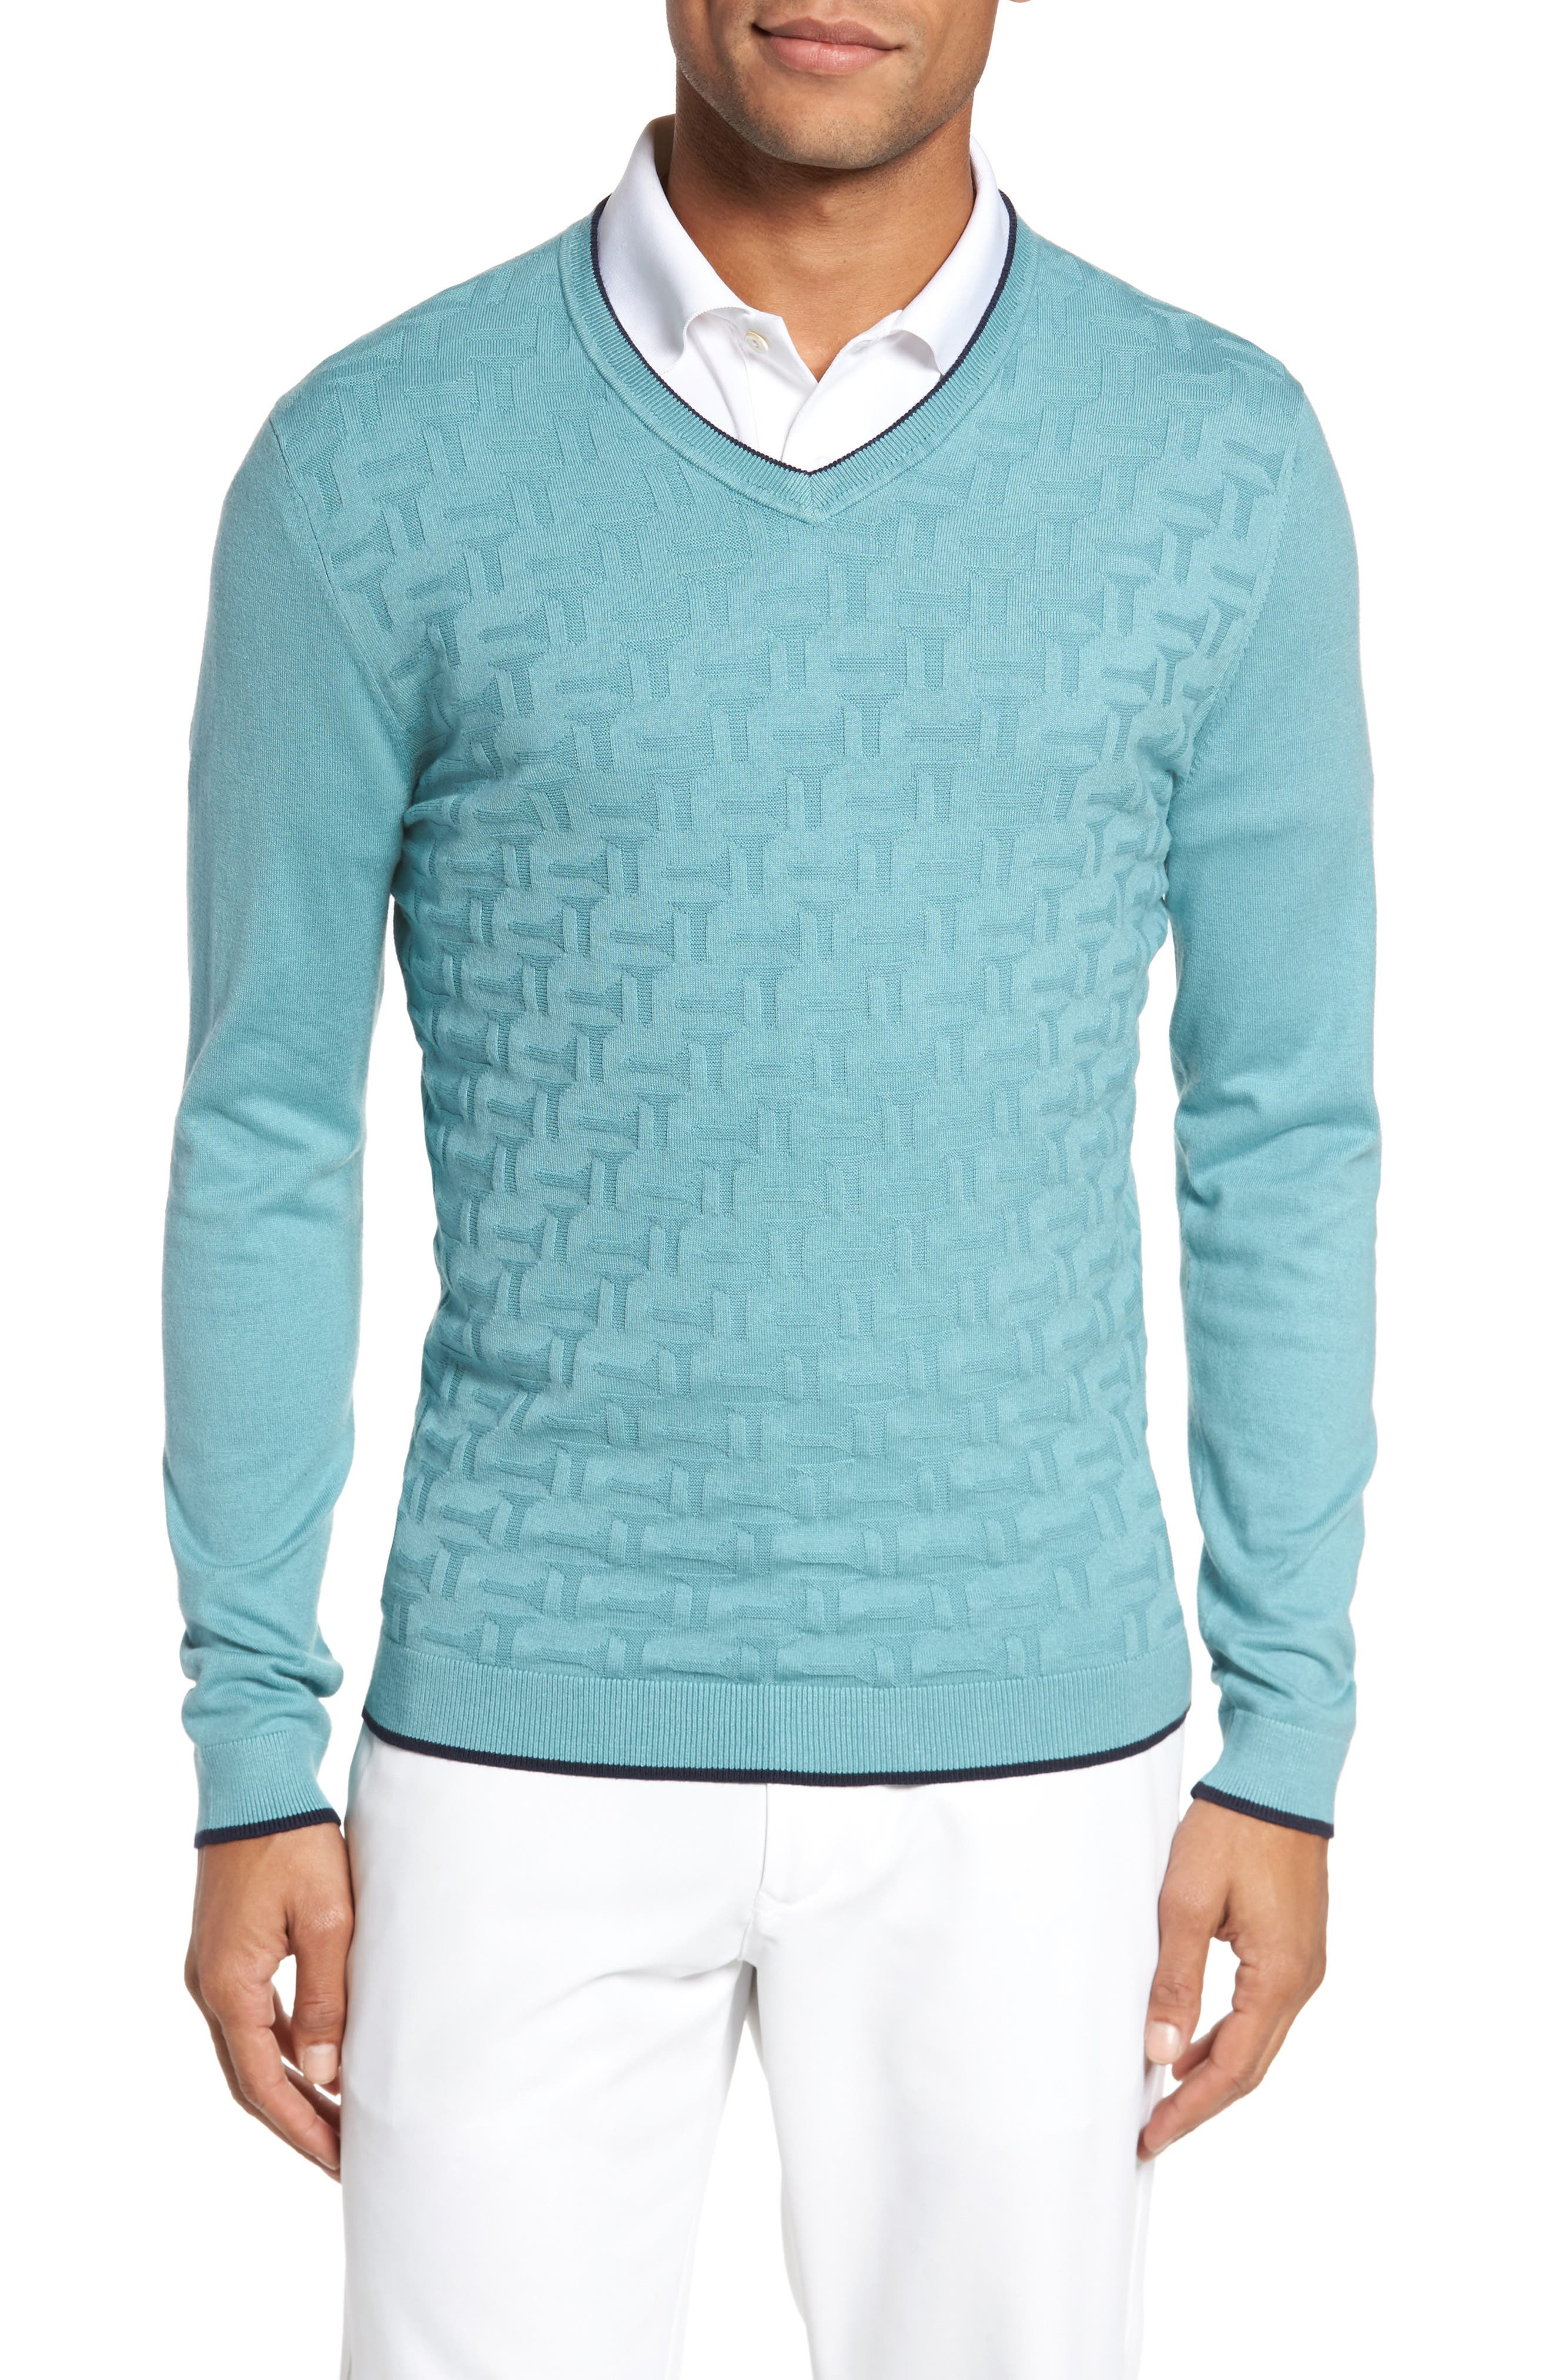 Alternate Image 1 Selected - Ted Baker London Armstro Tipped Golf Tee Sweater